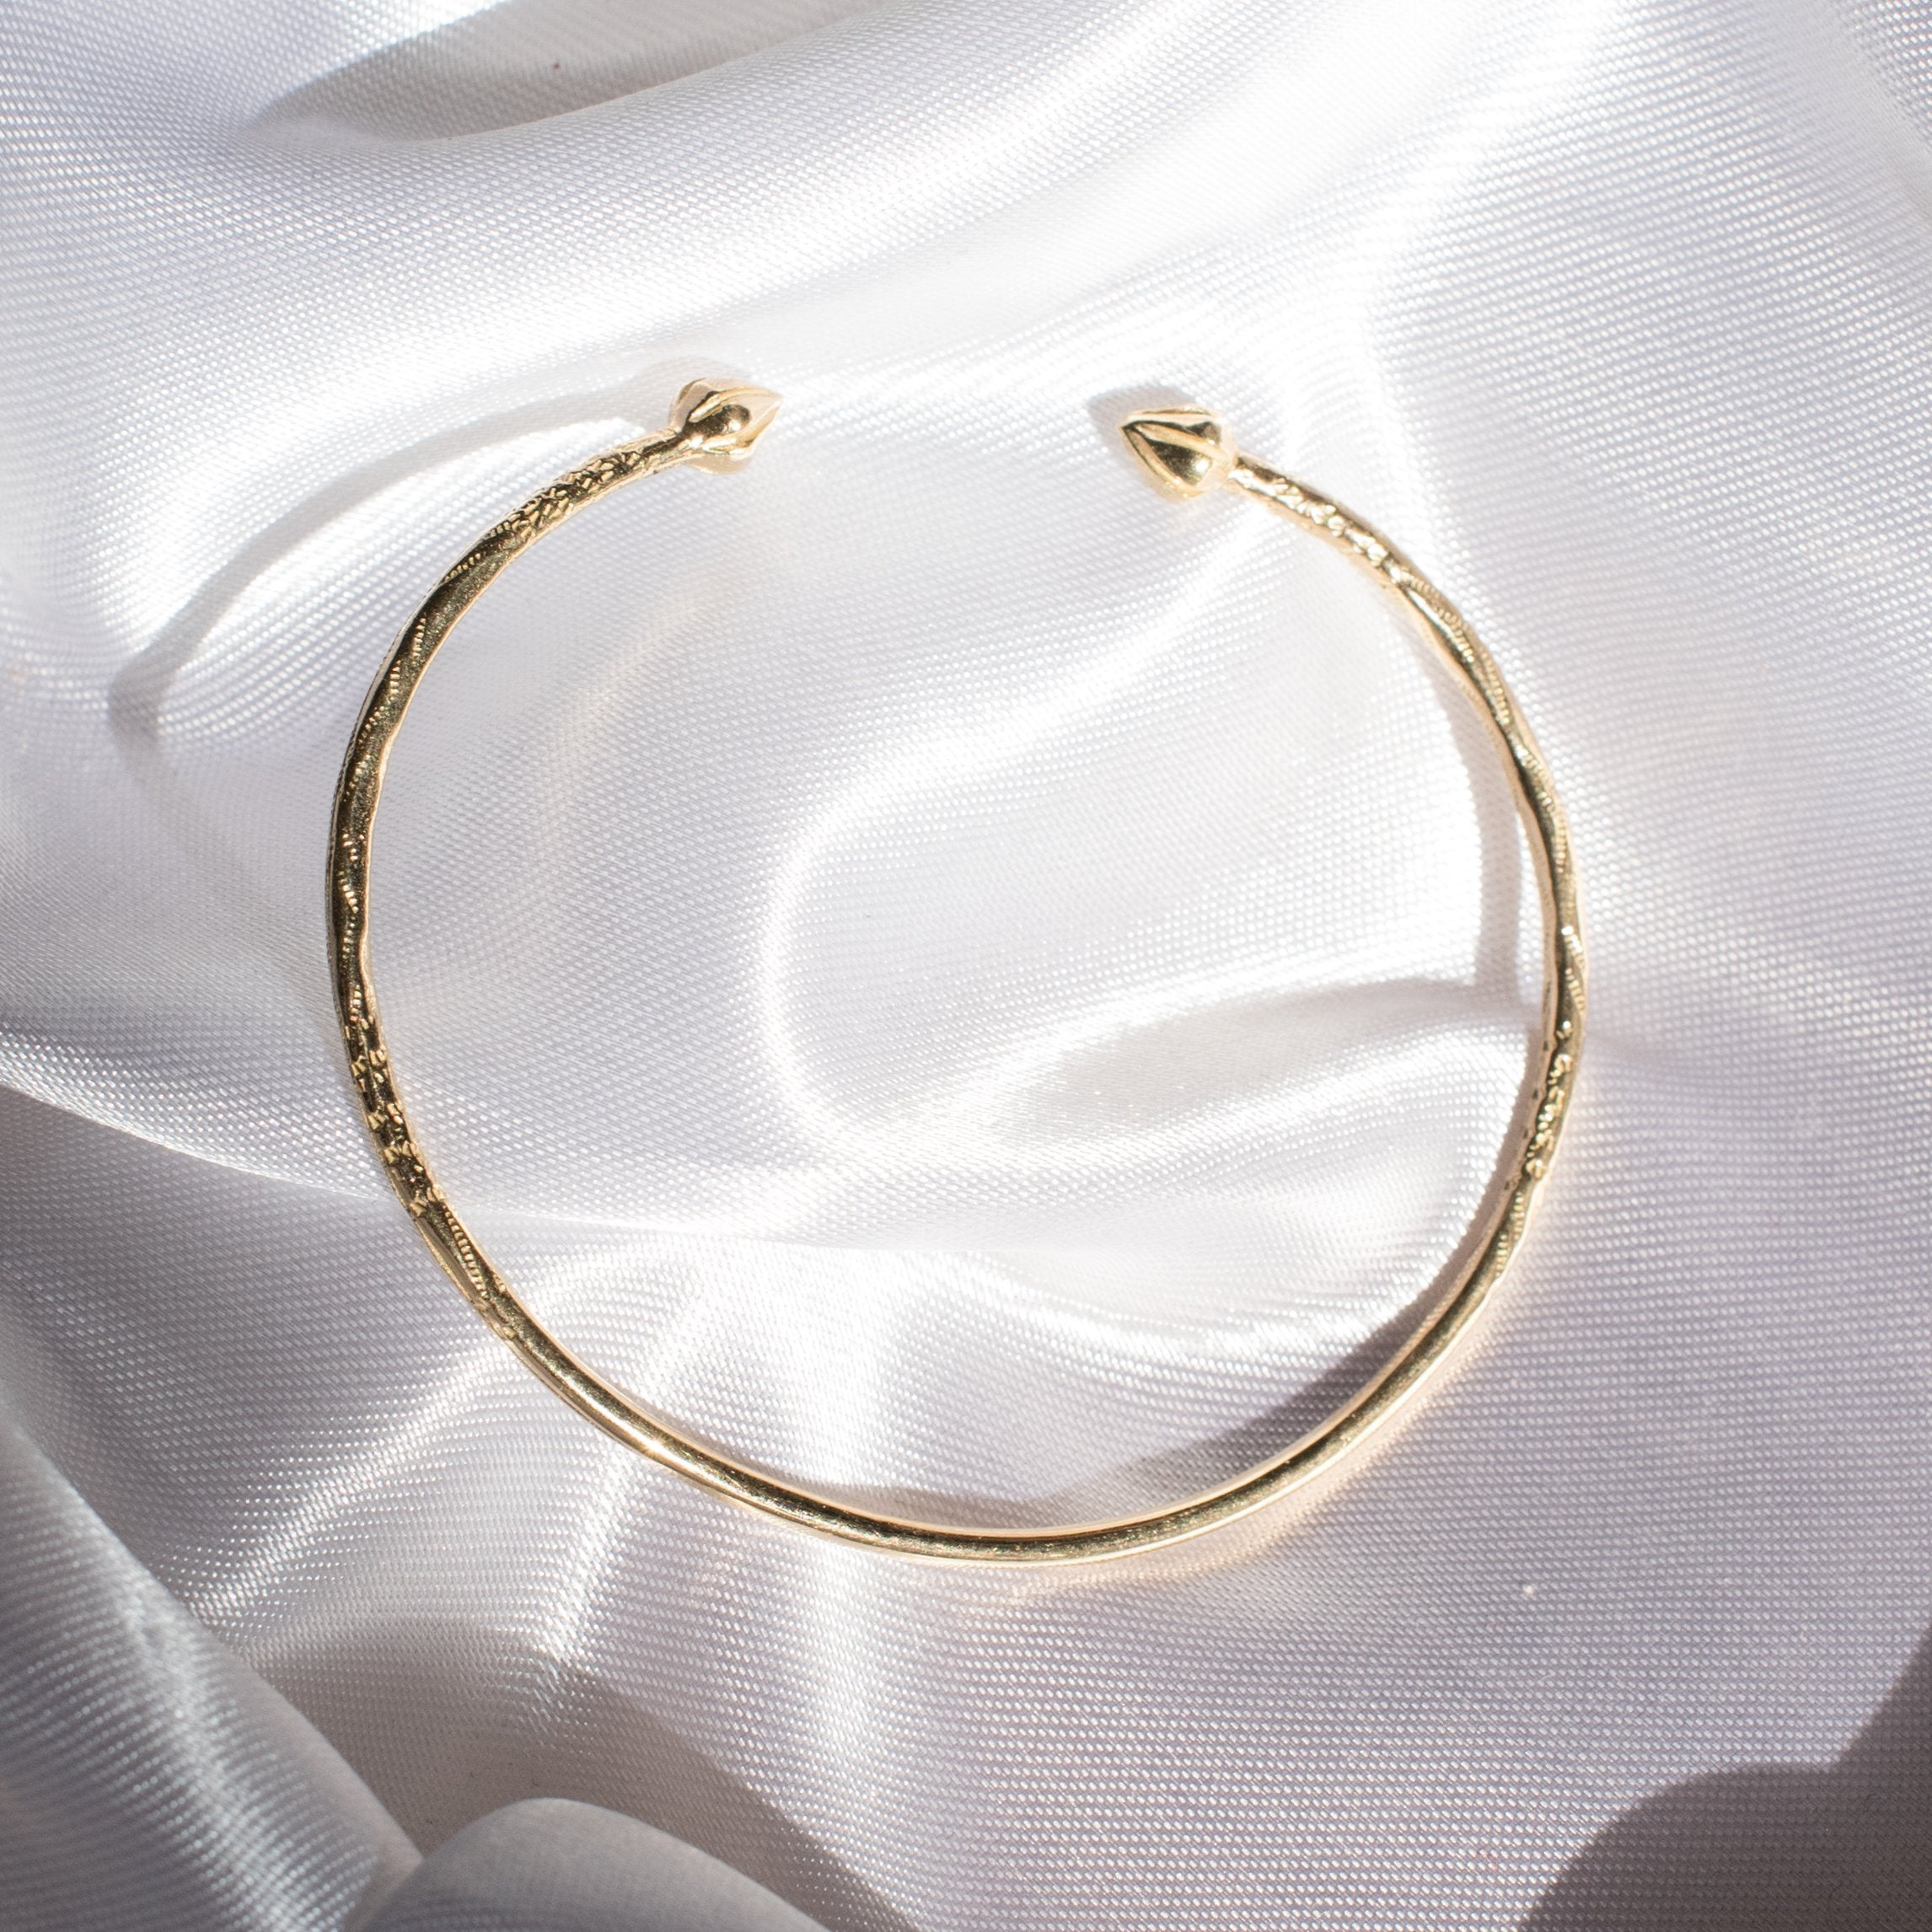 cheap solid gold bangle, 10k gold, solid bangle, handmade, misc jewellery